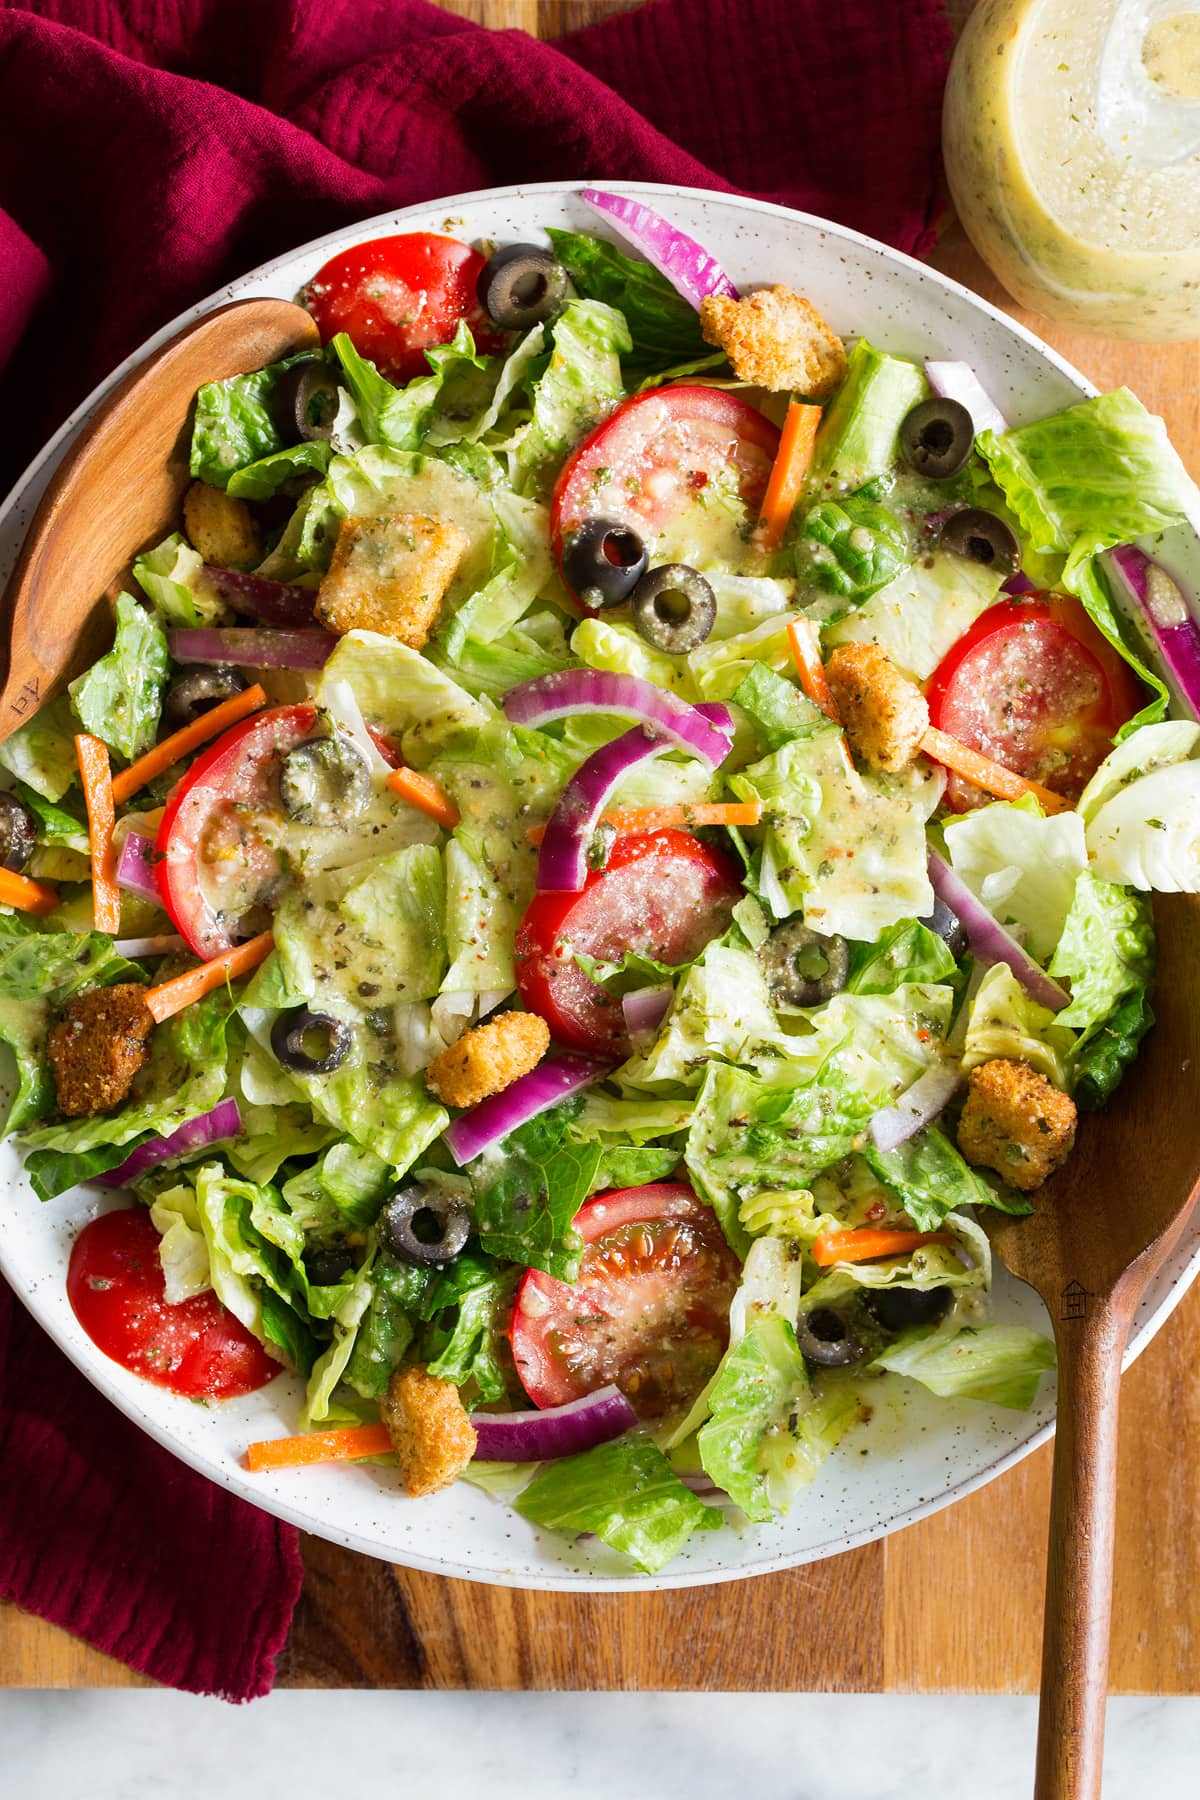 Photo: Green iceberg and romaine salad with carrots, olives and tomatoes that has been topped with Italian salad dressing.